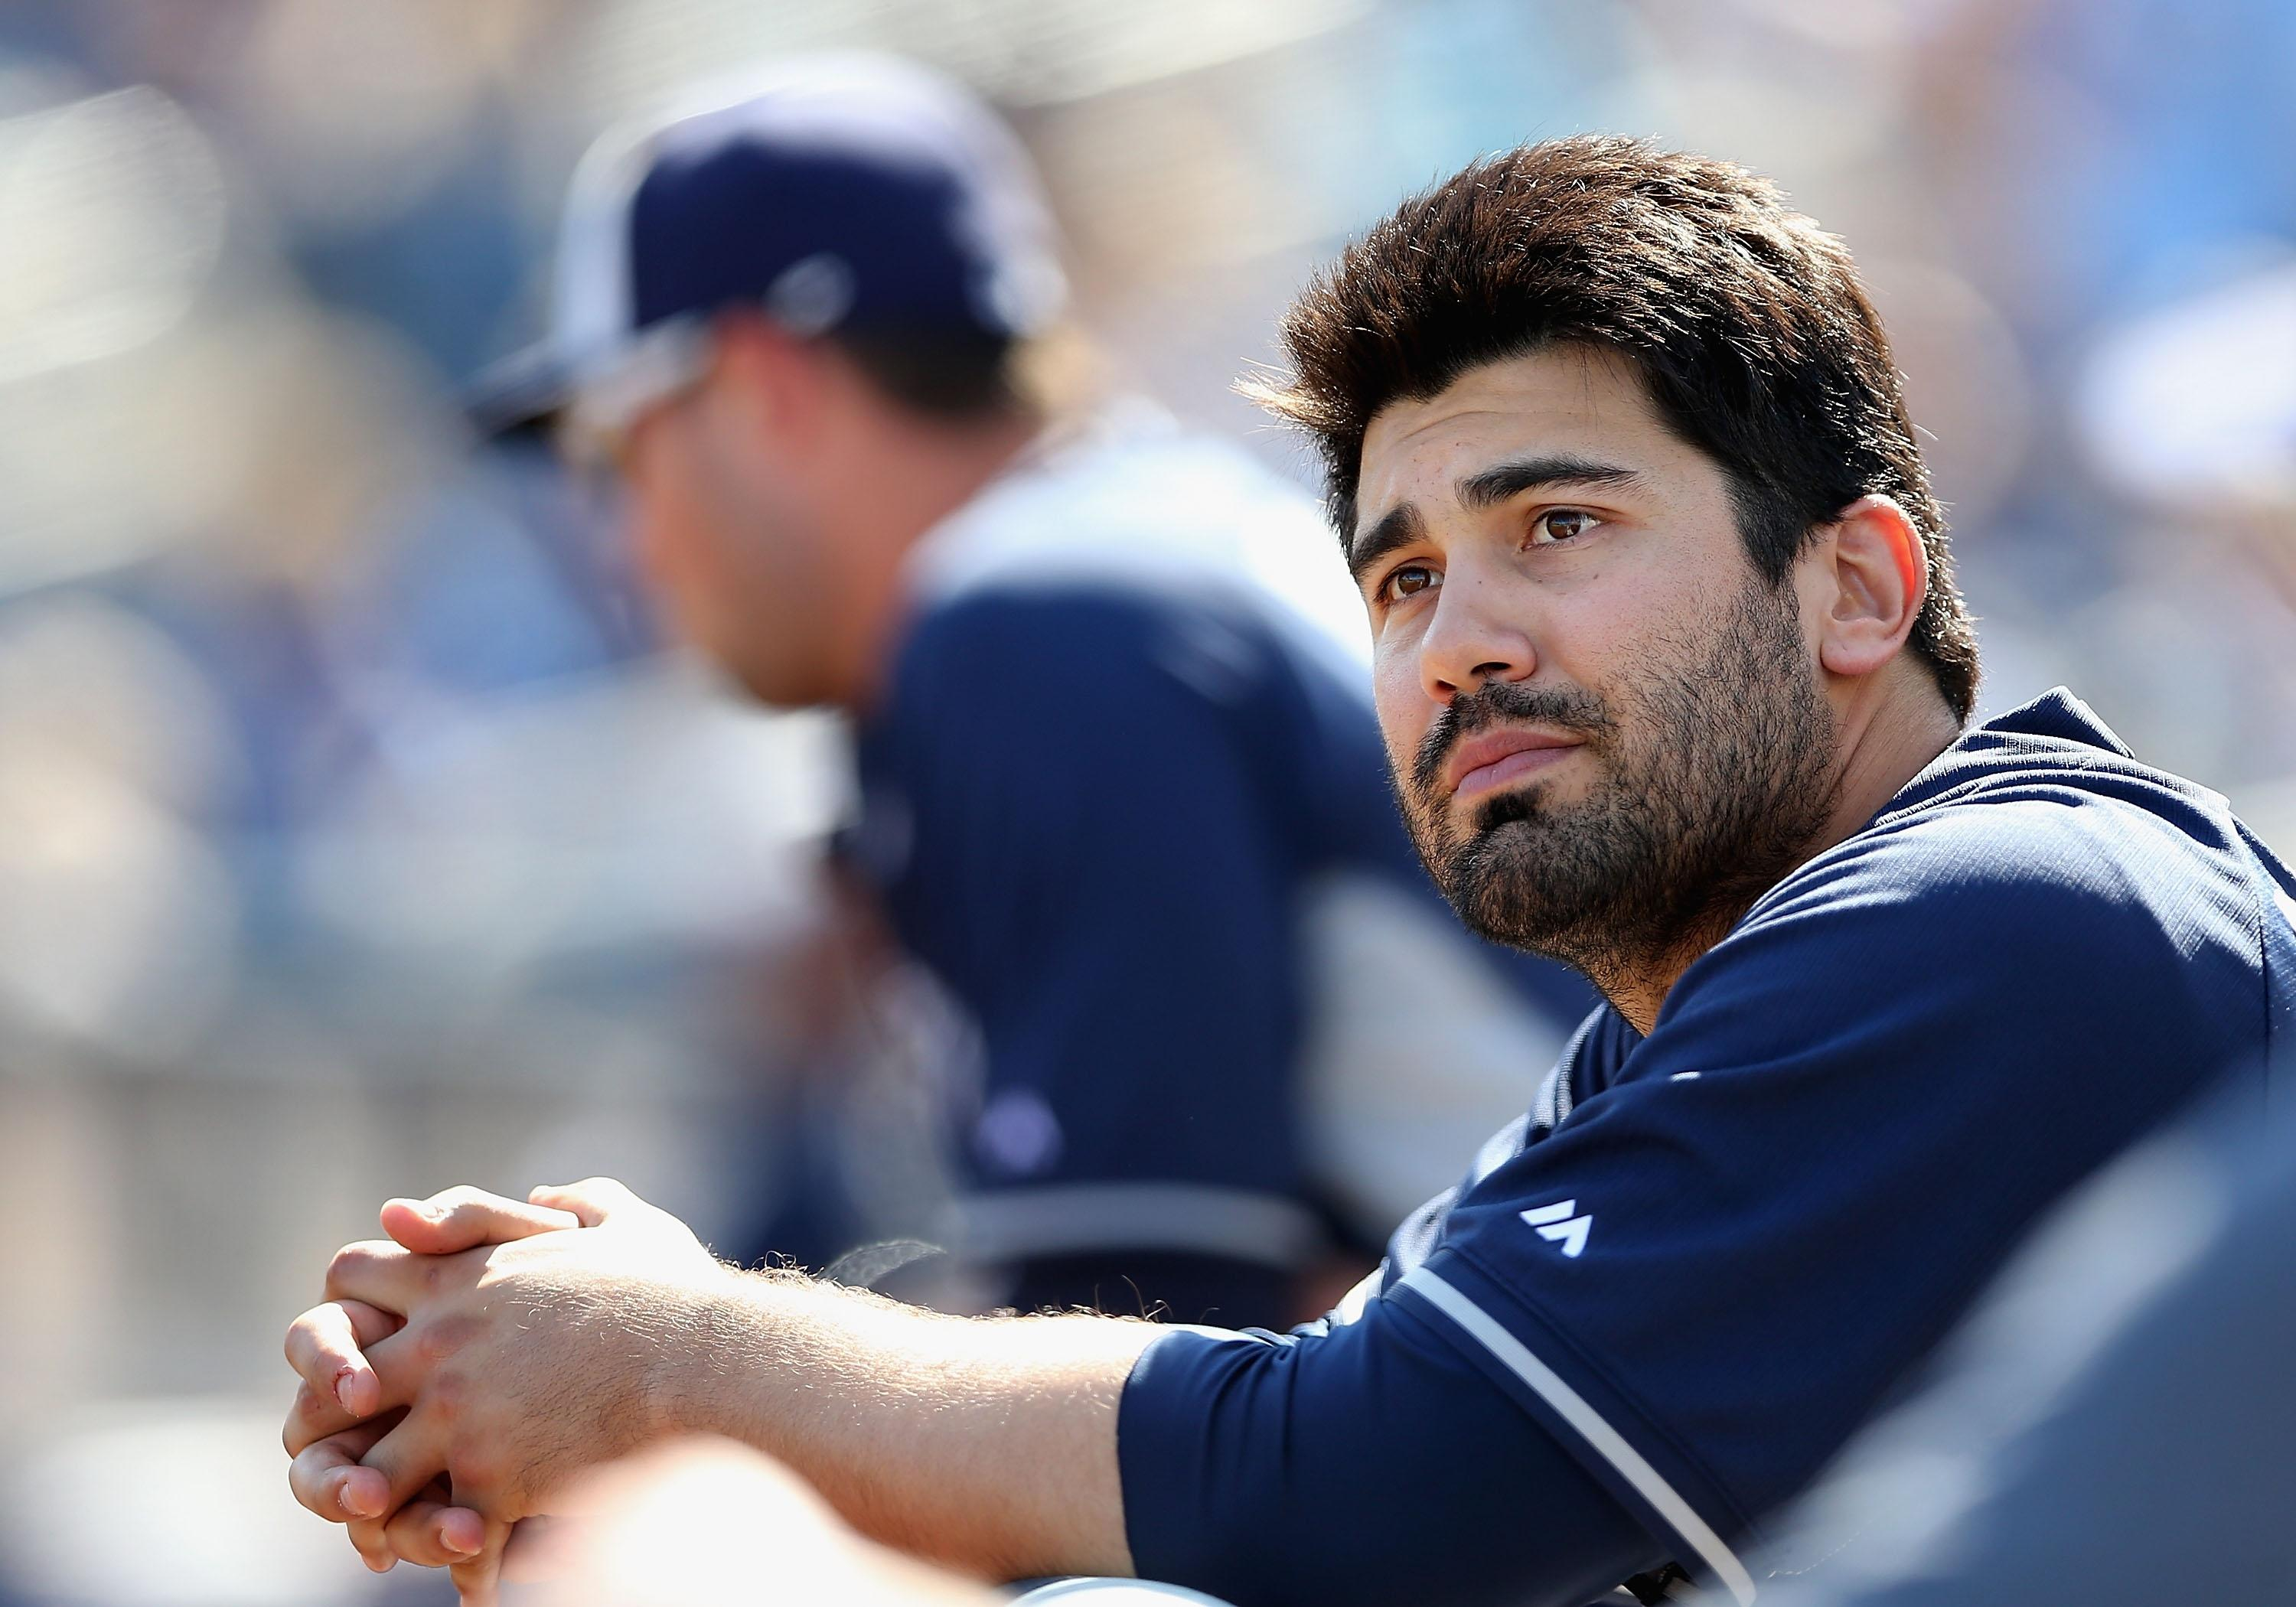 Carlos Quentin is retiring at age 32